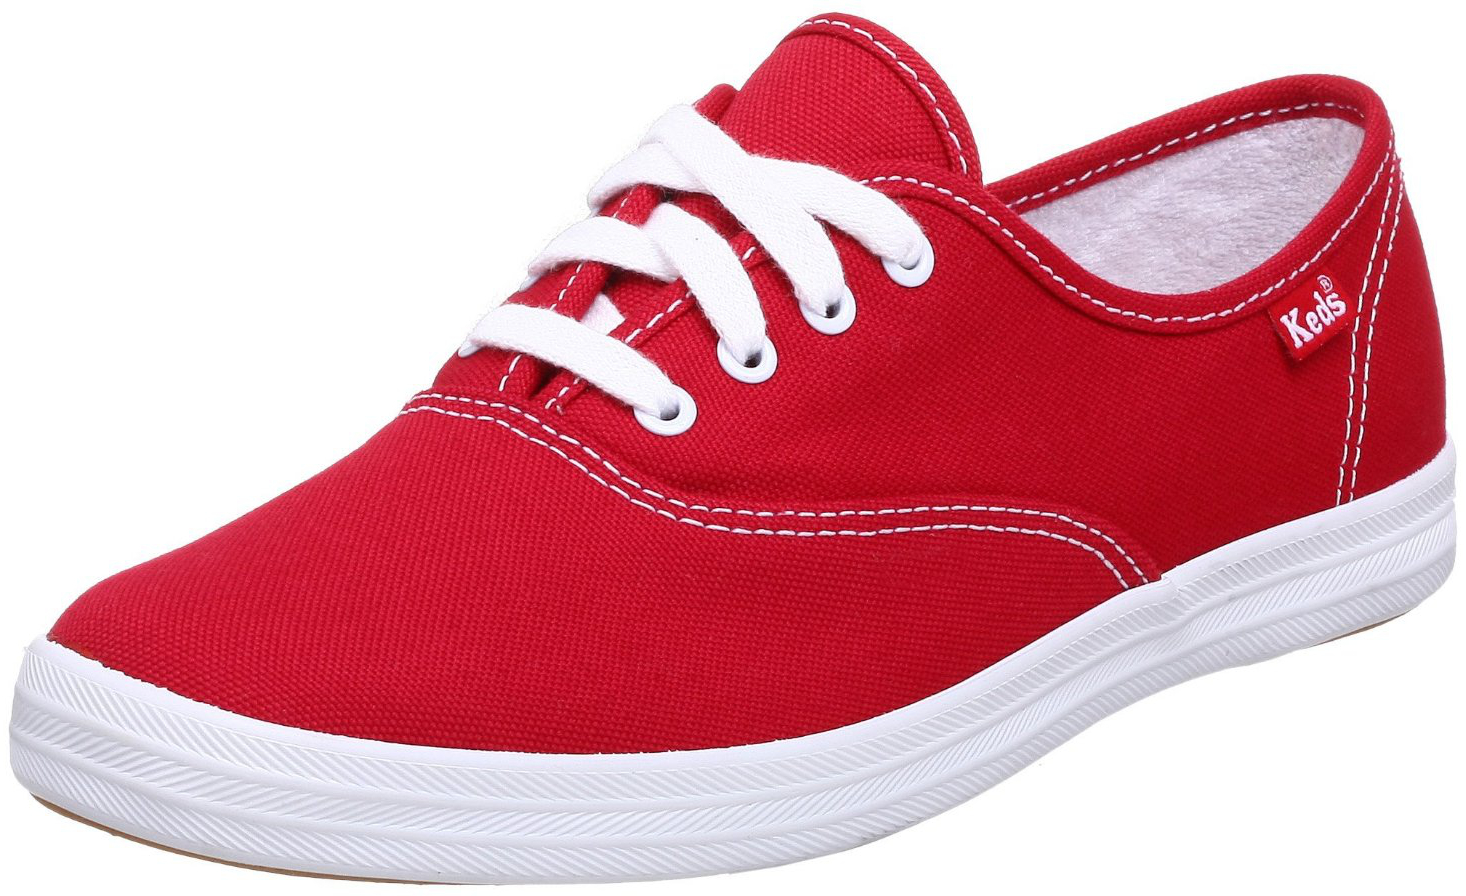 Casual Shoes Red And White